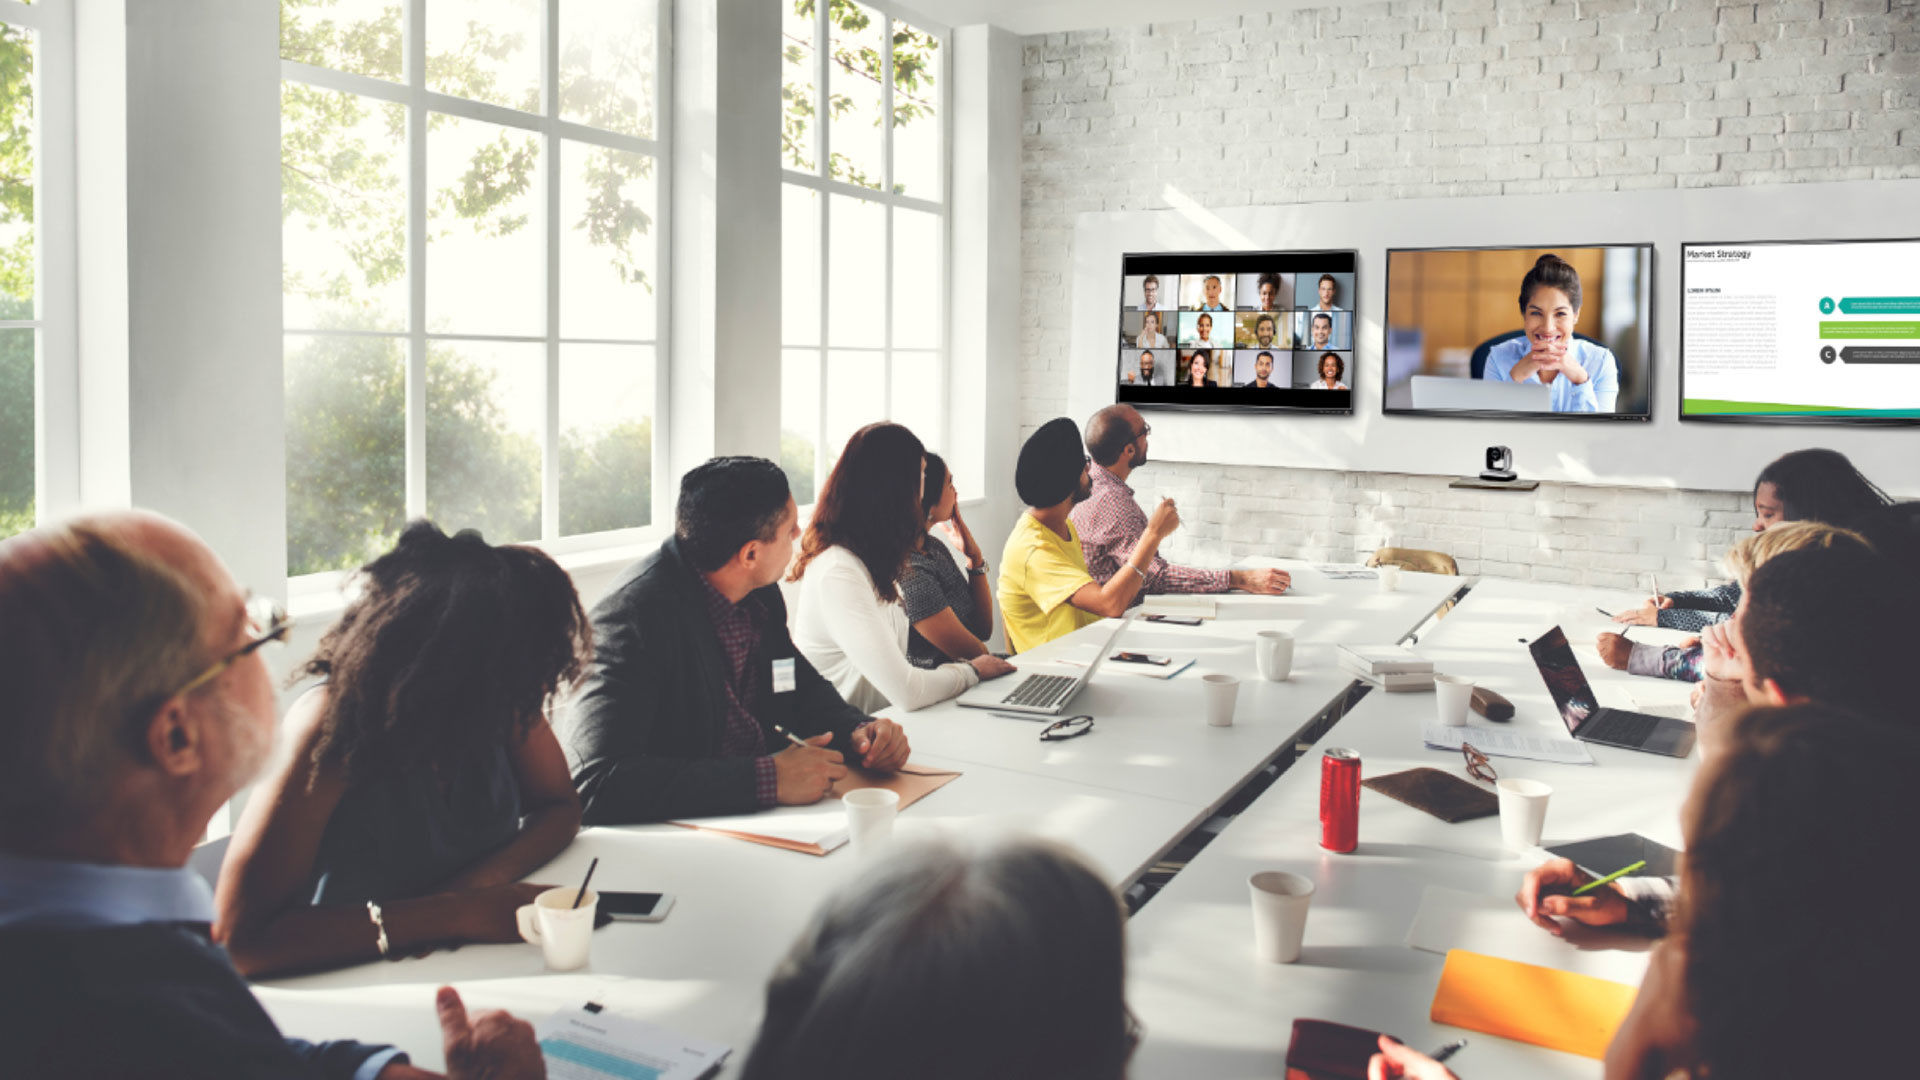 Zoom video conferencing solutions equipment optimized for zoom rooms